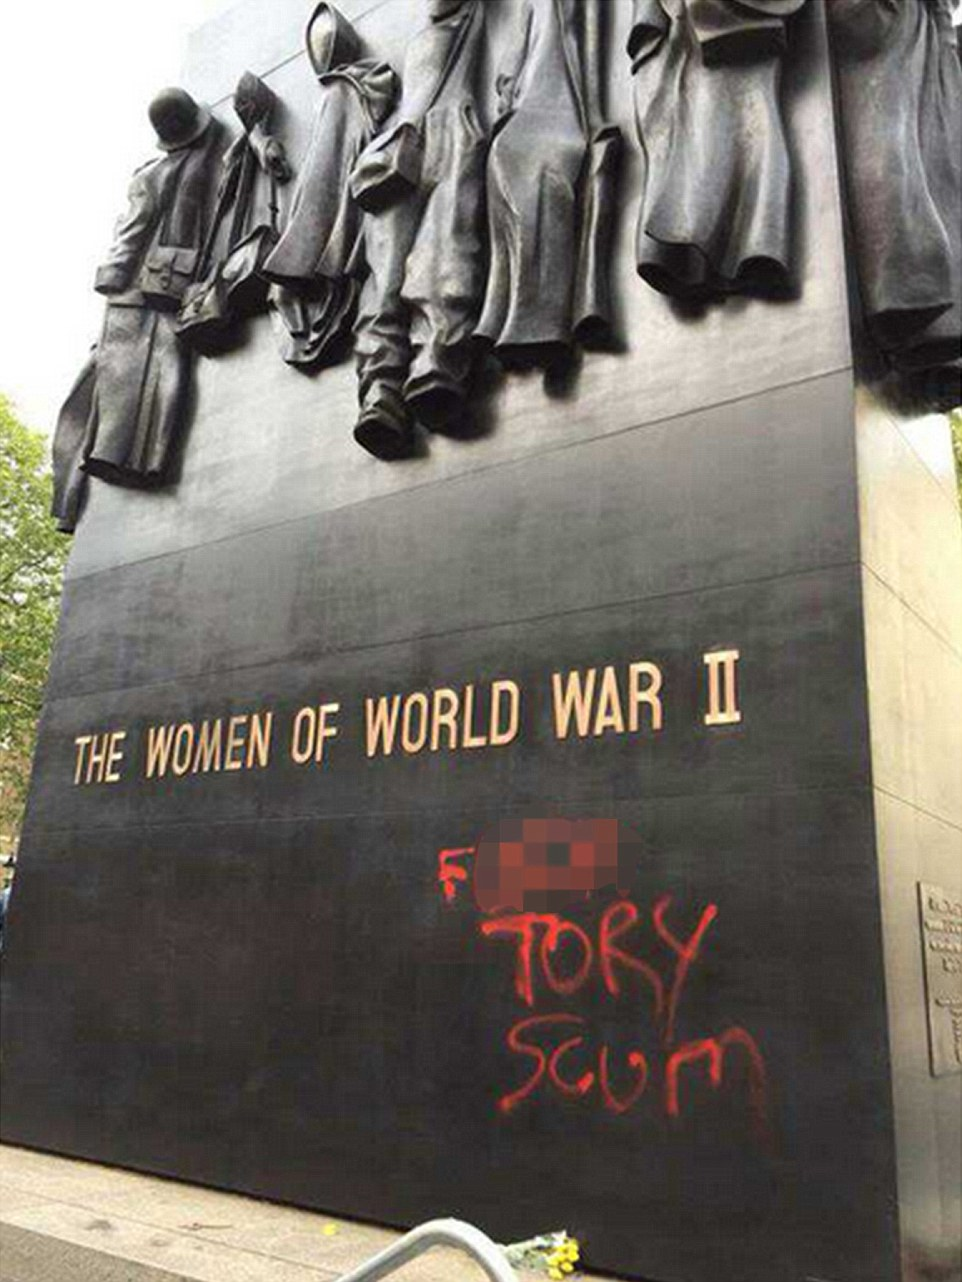 The Royal British Legion today condemned the vandalism describing it as 'a senseless act' especially during this VE Day anniversary